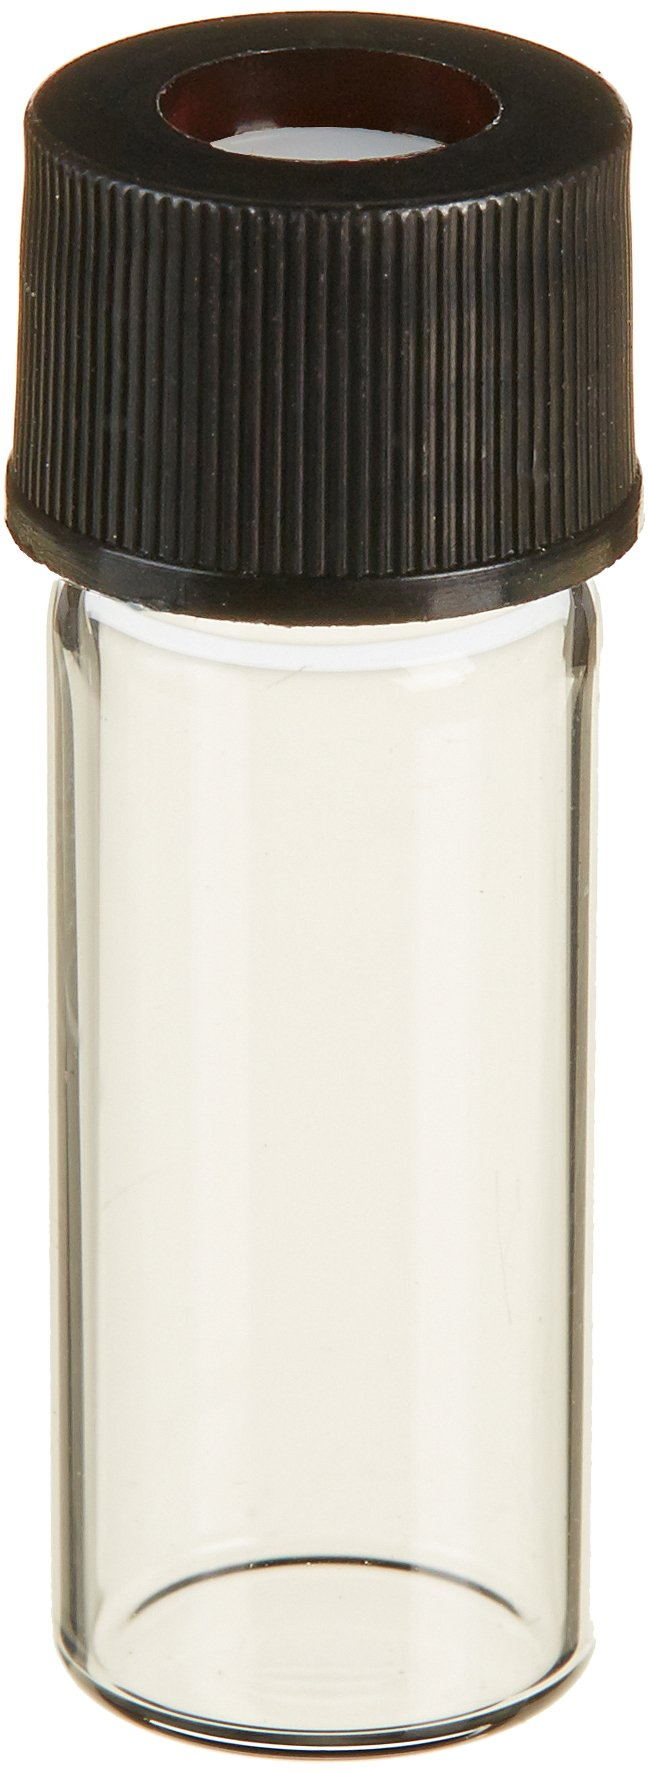 JG Finneran 801010T-1232 Borosilicate Glass Big Mouth Screw Thread Vial with Closure and 0.010'' Thick PTFE Septa, 2.0mL Capacity, 10-425mm Neck, 12mm Diameter, 32mm Height, Clear (Case of 100)